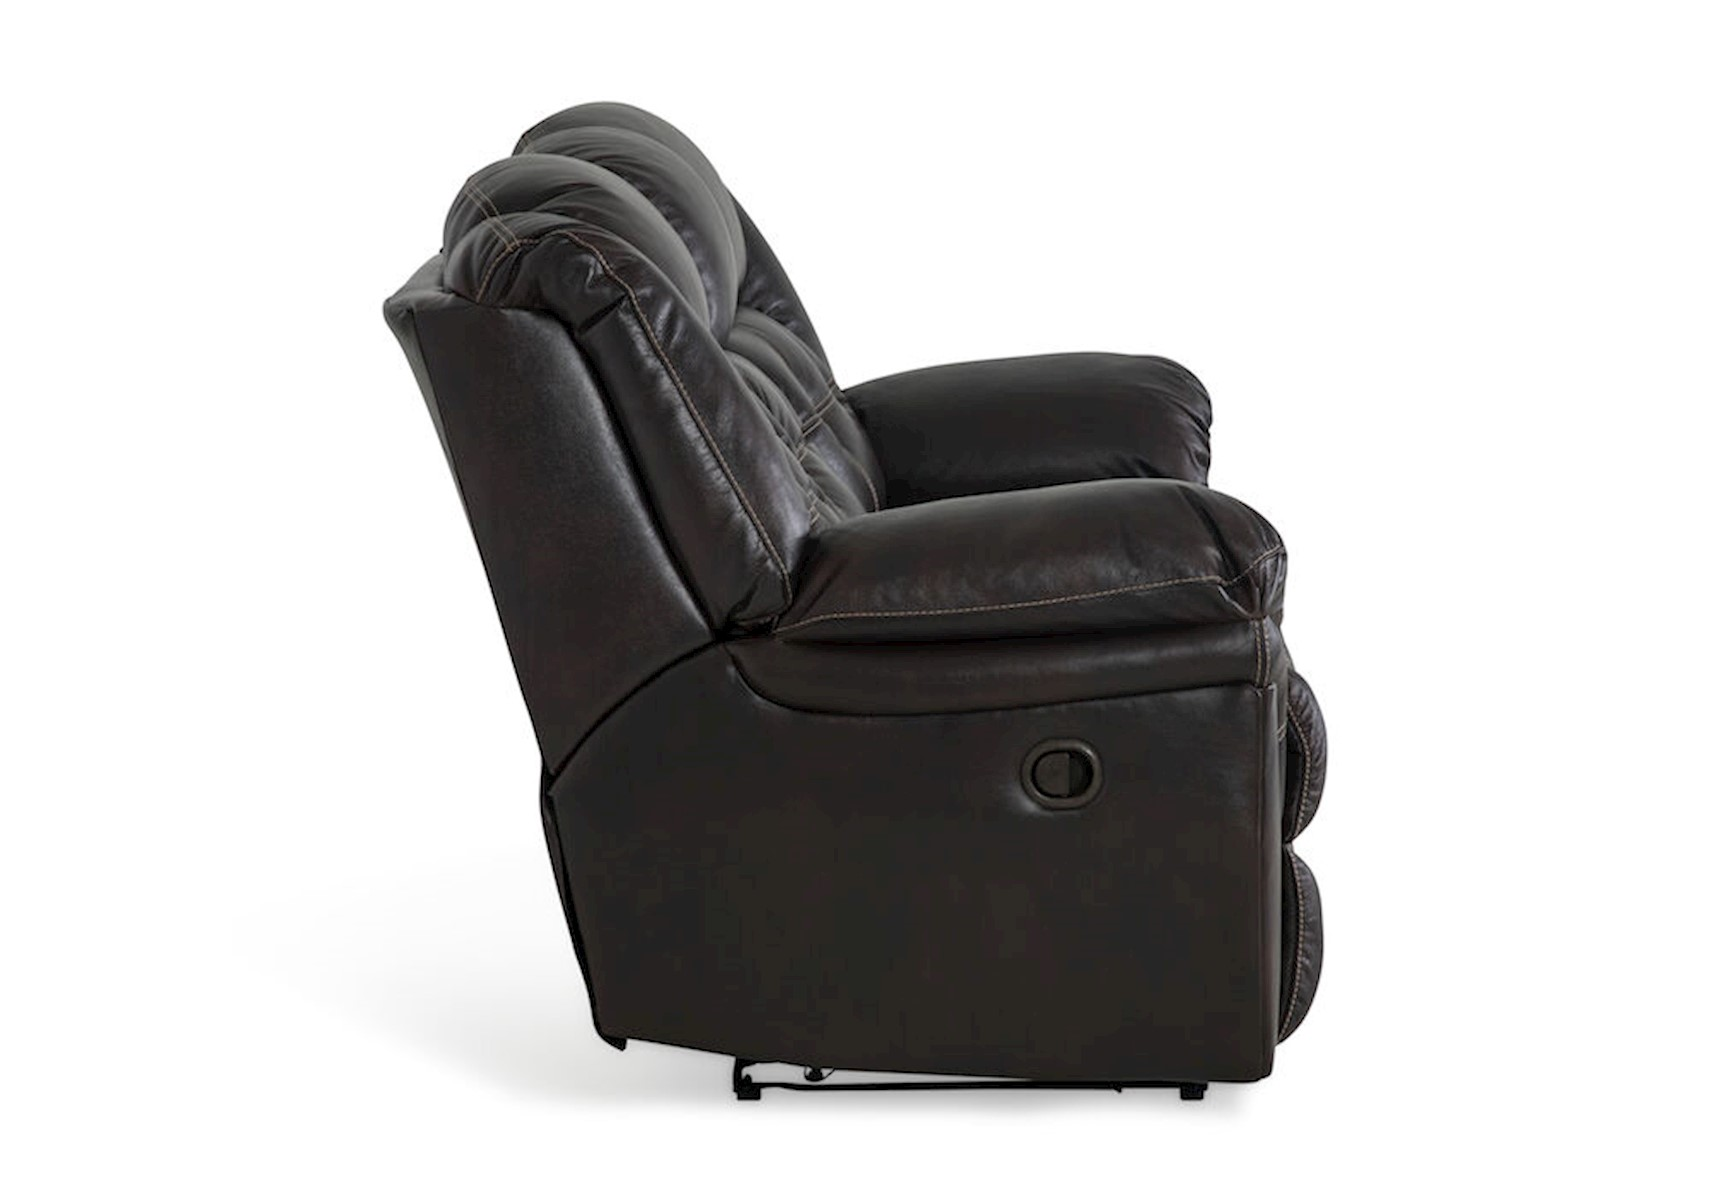 Remarkable Lacks Cheyenne Dual Manual Reclining Sofa Pabps2019 Chair Design Images Pabps2019Com